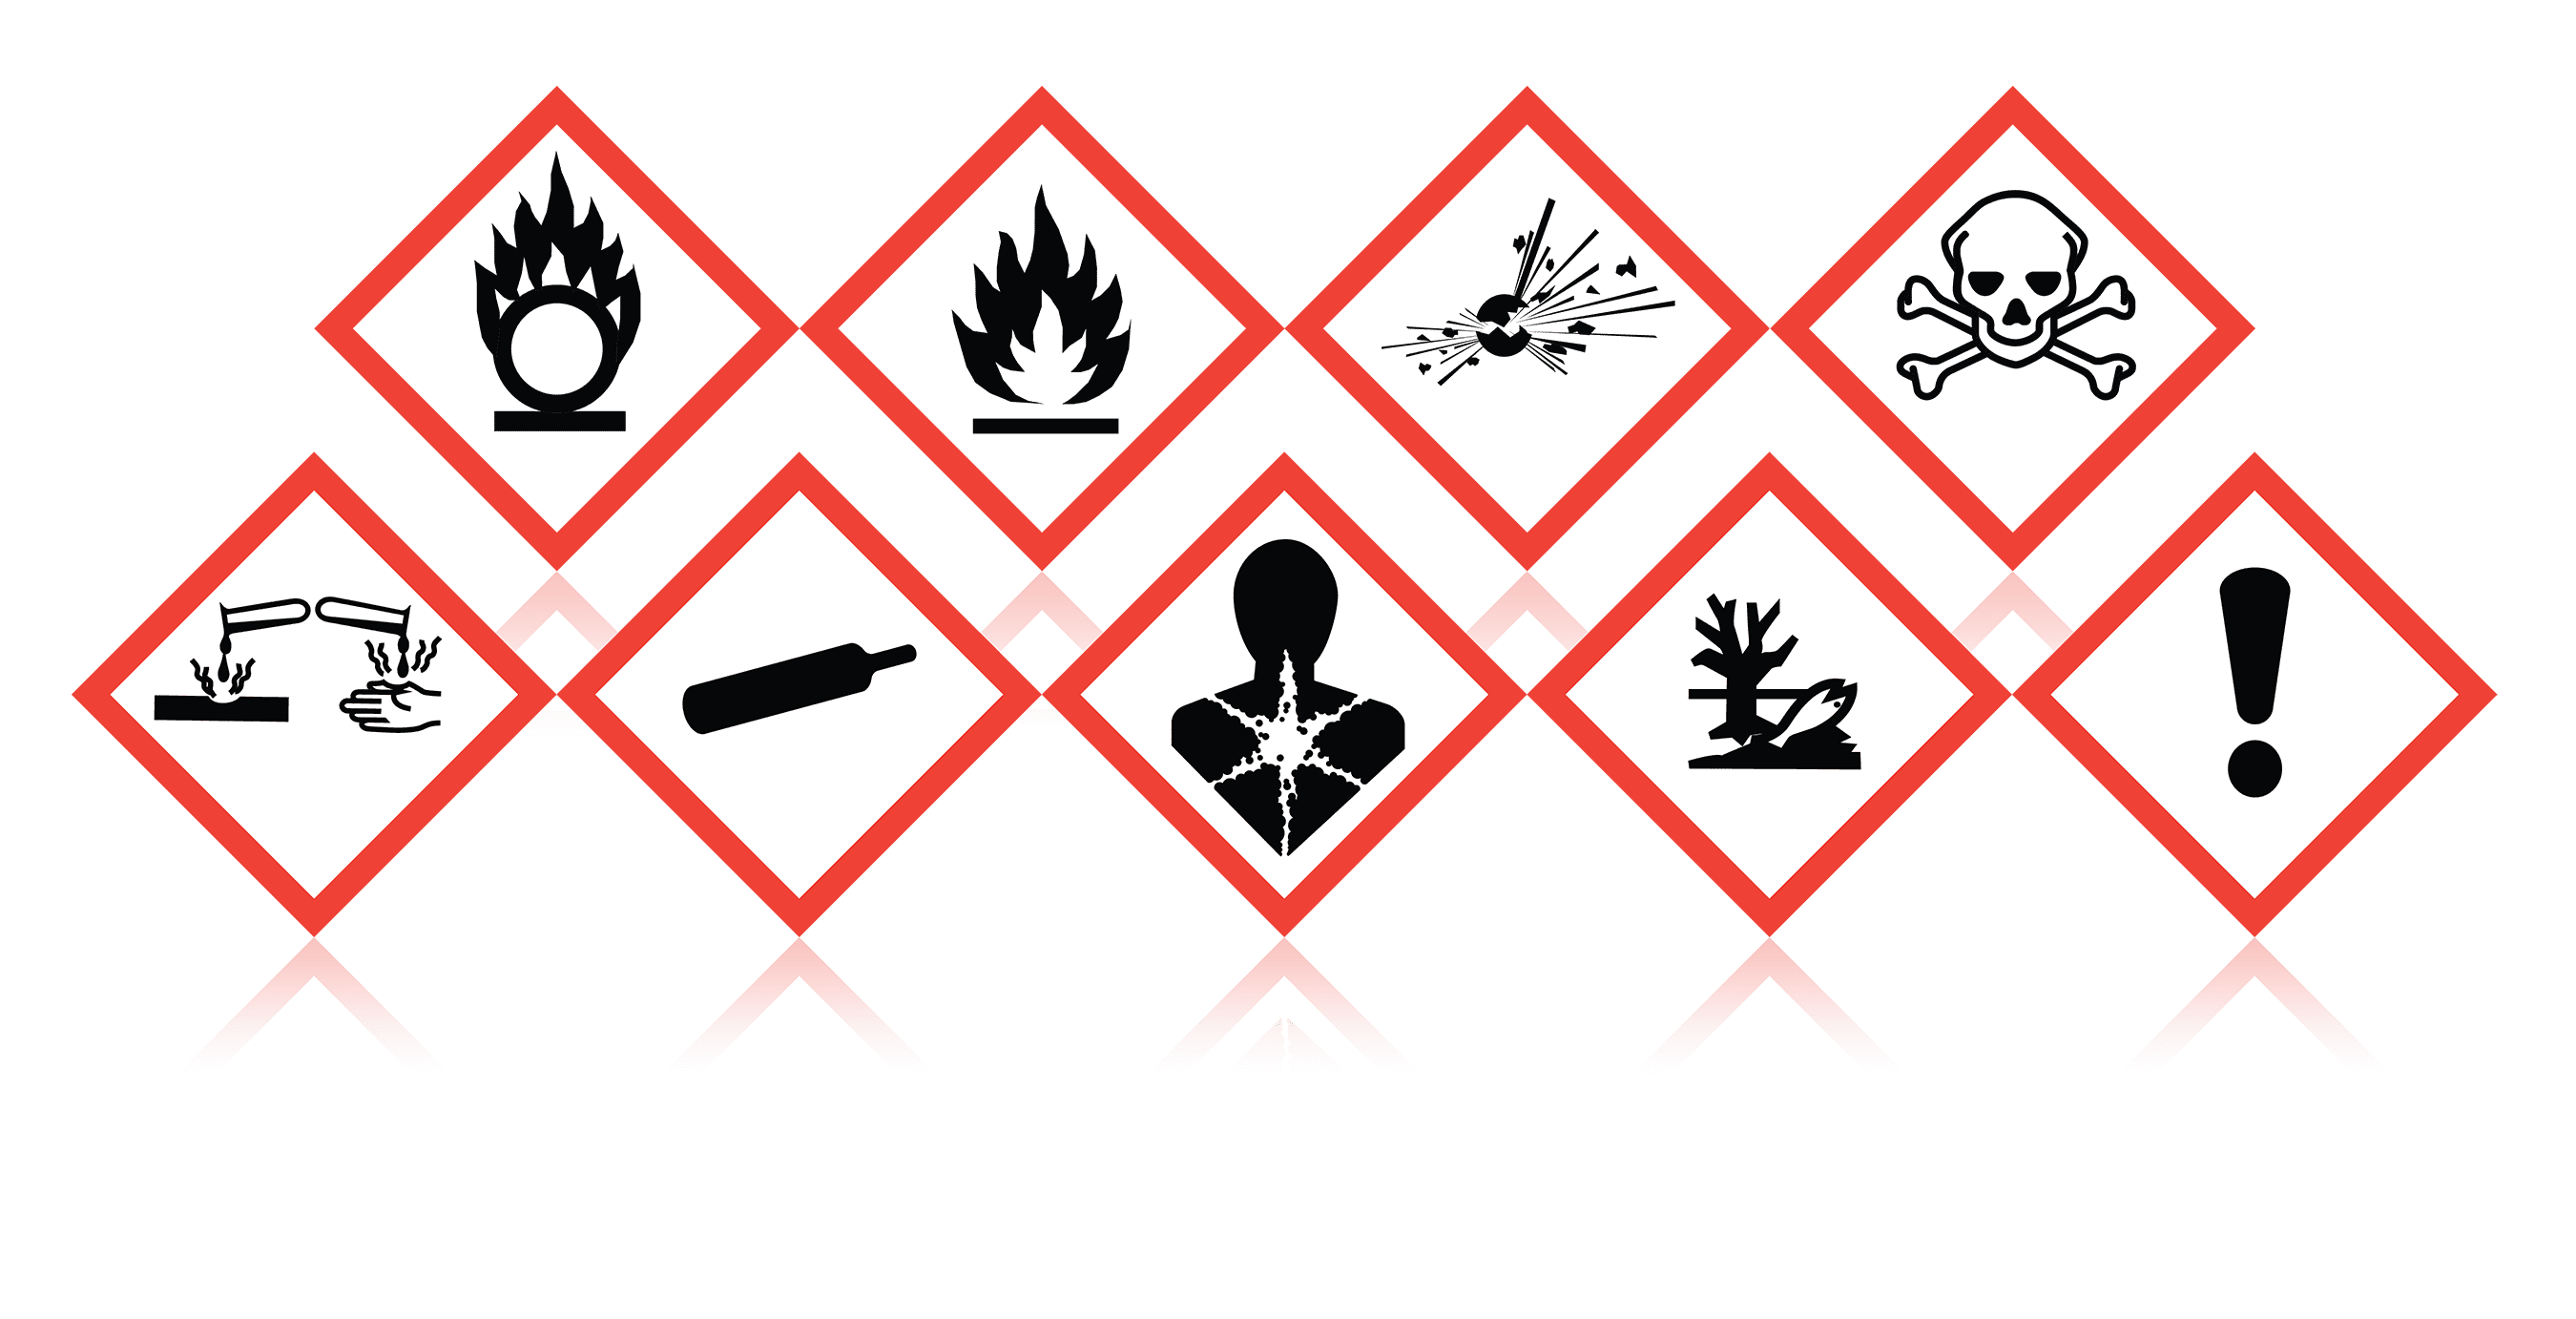 h-statements-p-statements-ghs-sds AND ghs-101-safety-data-sheets-sds AND hazard-communication-plan AND six-ways-leverage-chemical-labeling